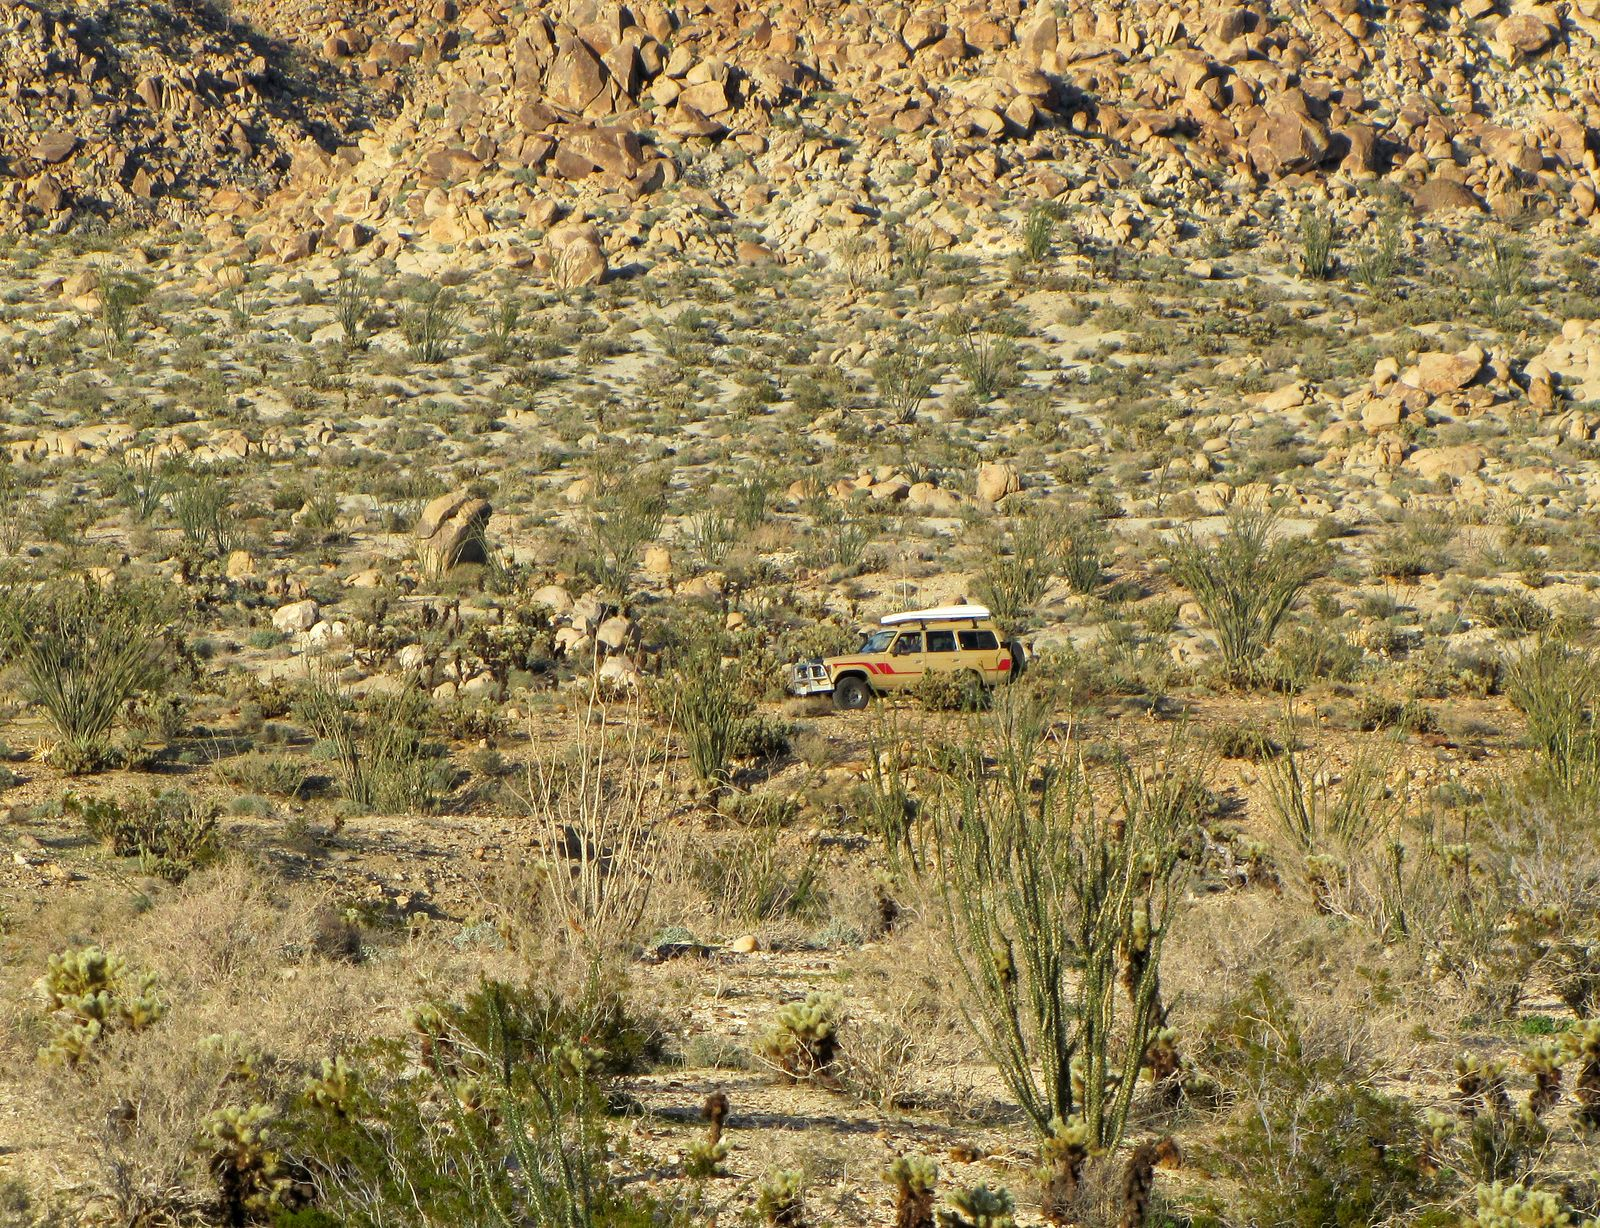 Jan, Gina and Pablo traveling through the Anza Borrego Desert